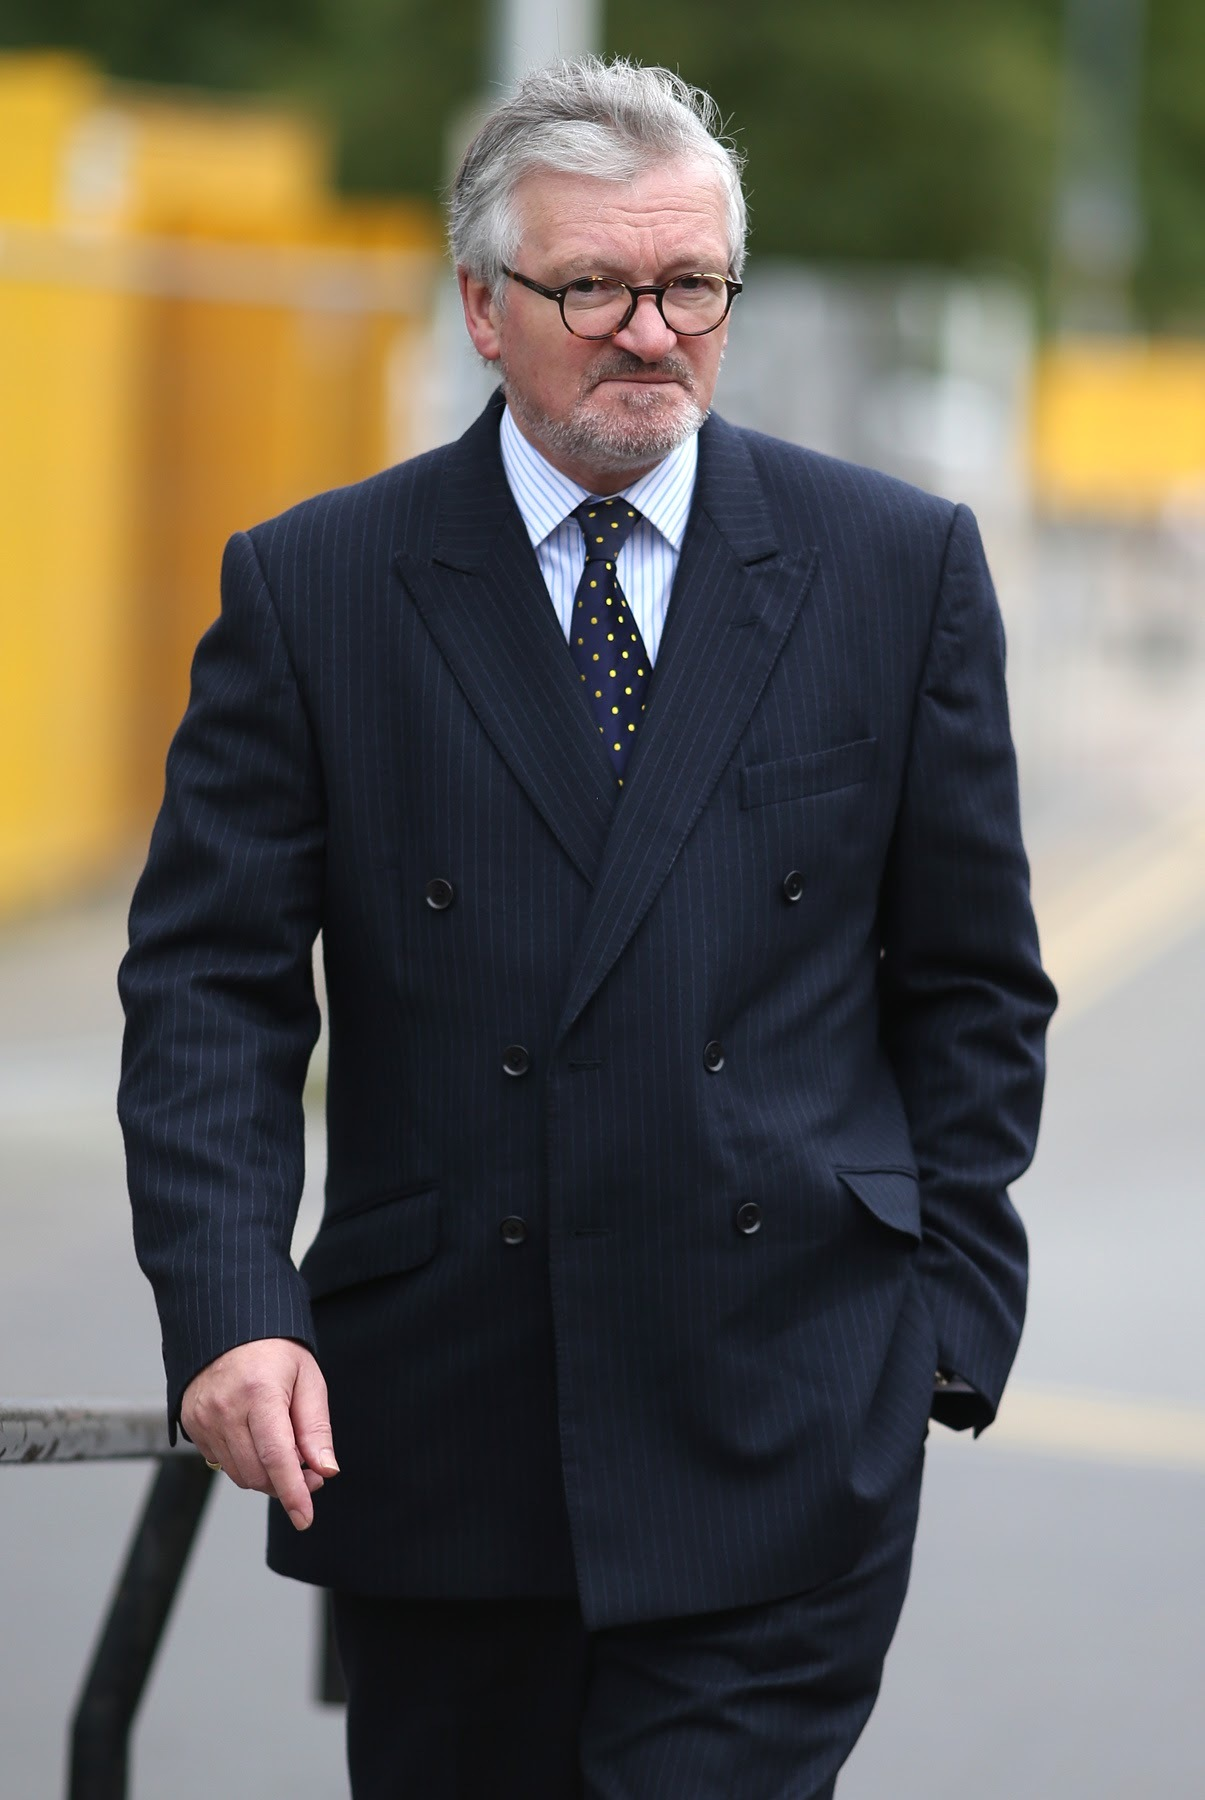 SENTENCED: Former chief executive of Butterwick Hospice, Graham Leggatt-Chidgey arrives at Teesside Magistrates' Court, Middlesbrough, for an earlier hearing. Picture: CHRIS BOOTH